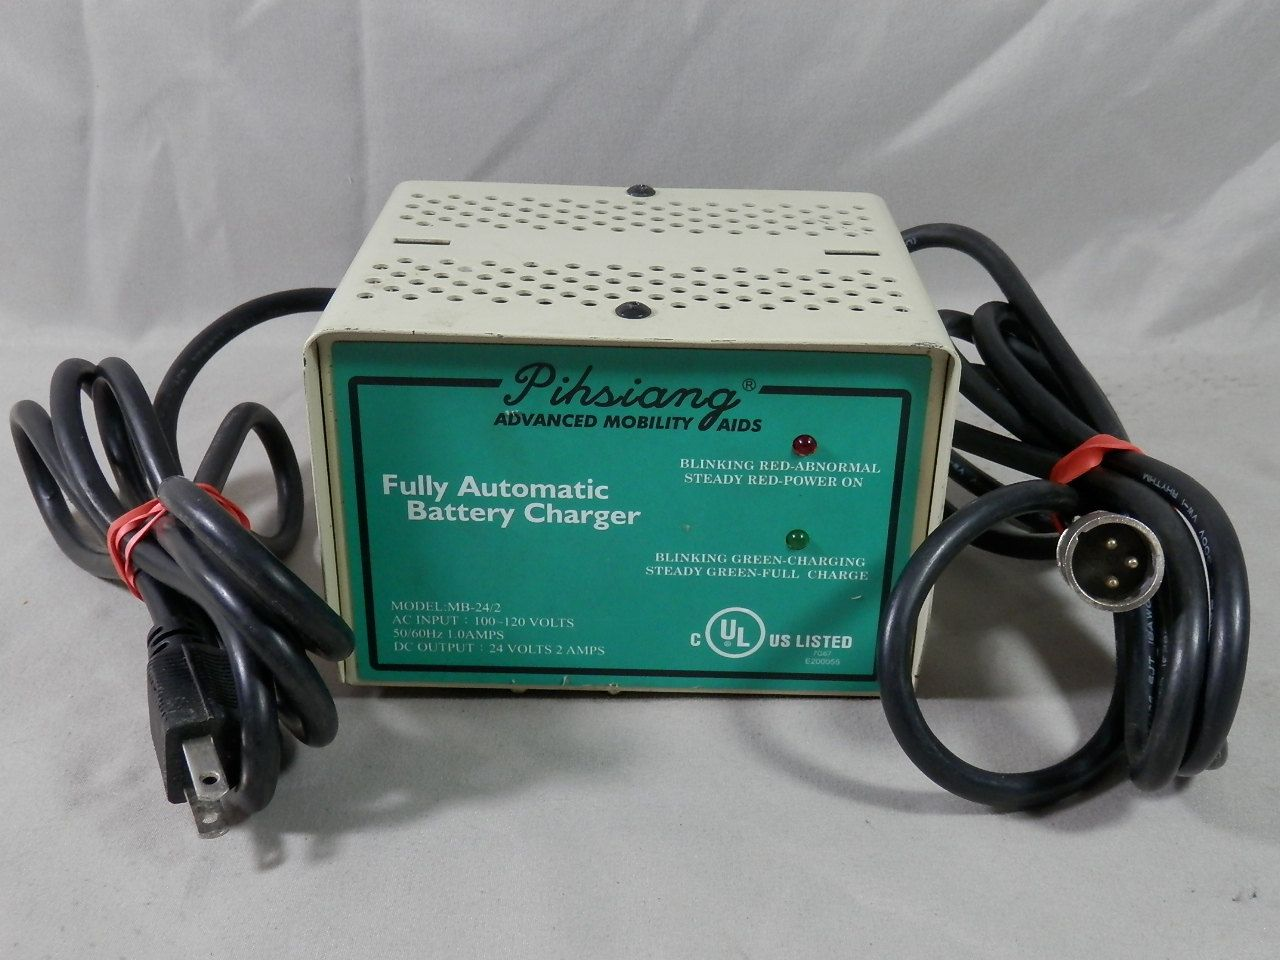 pihsiang mb 24 2 24 volt 2a automatic battery charger mobility scooter 3 pin connector 2 amp by caymanhilldesigns on etsy [ 1280 x 960 Pixel ]